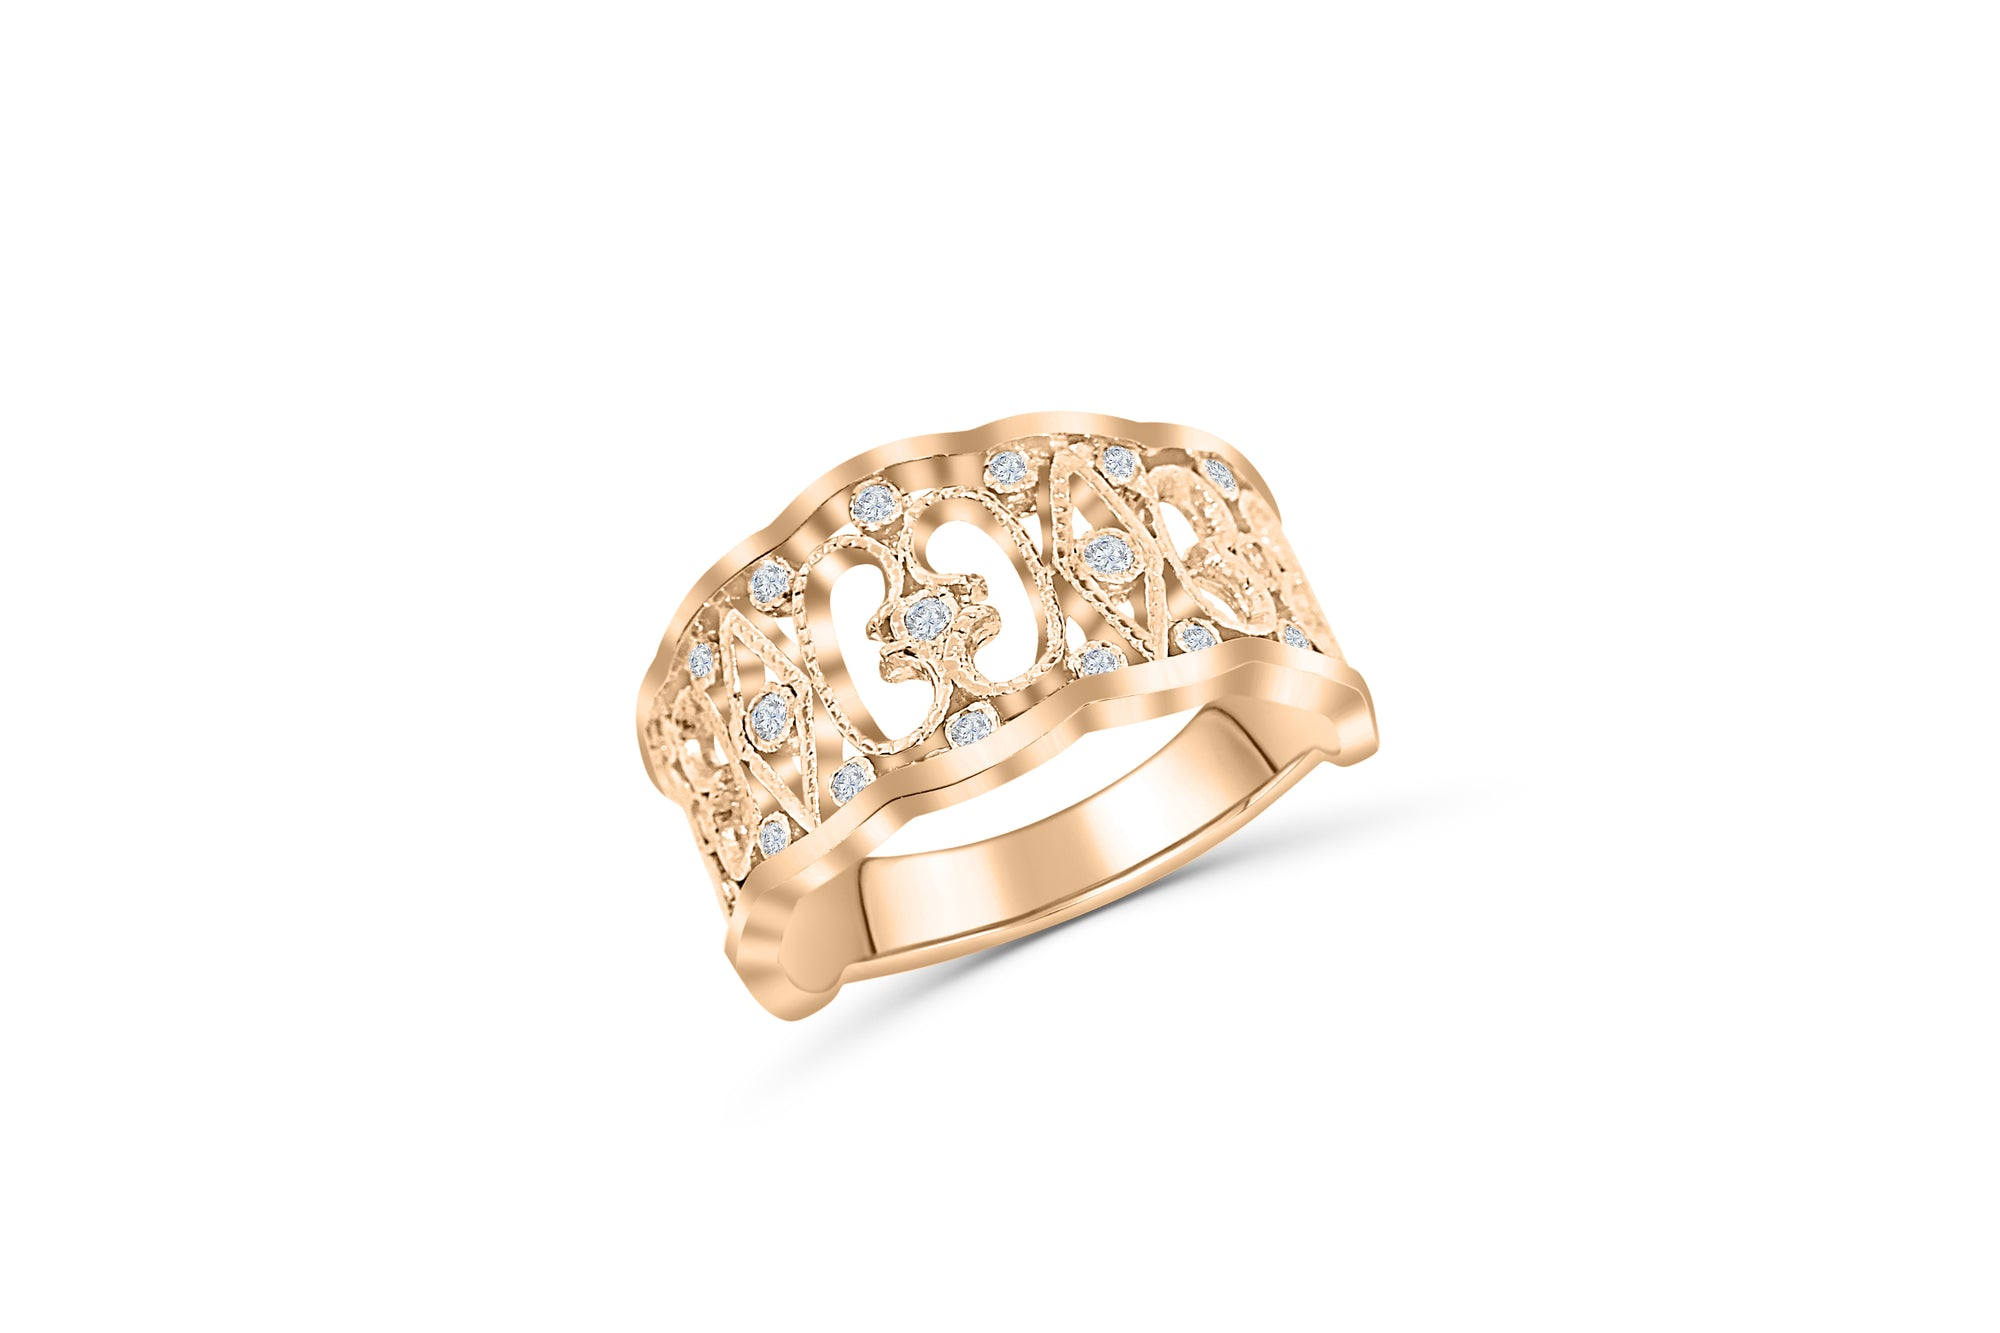 Gapped Diamond Ring 0.21 ct tw Round 14K Rose Gold DIR017 - NorthandSouthJewelry